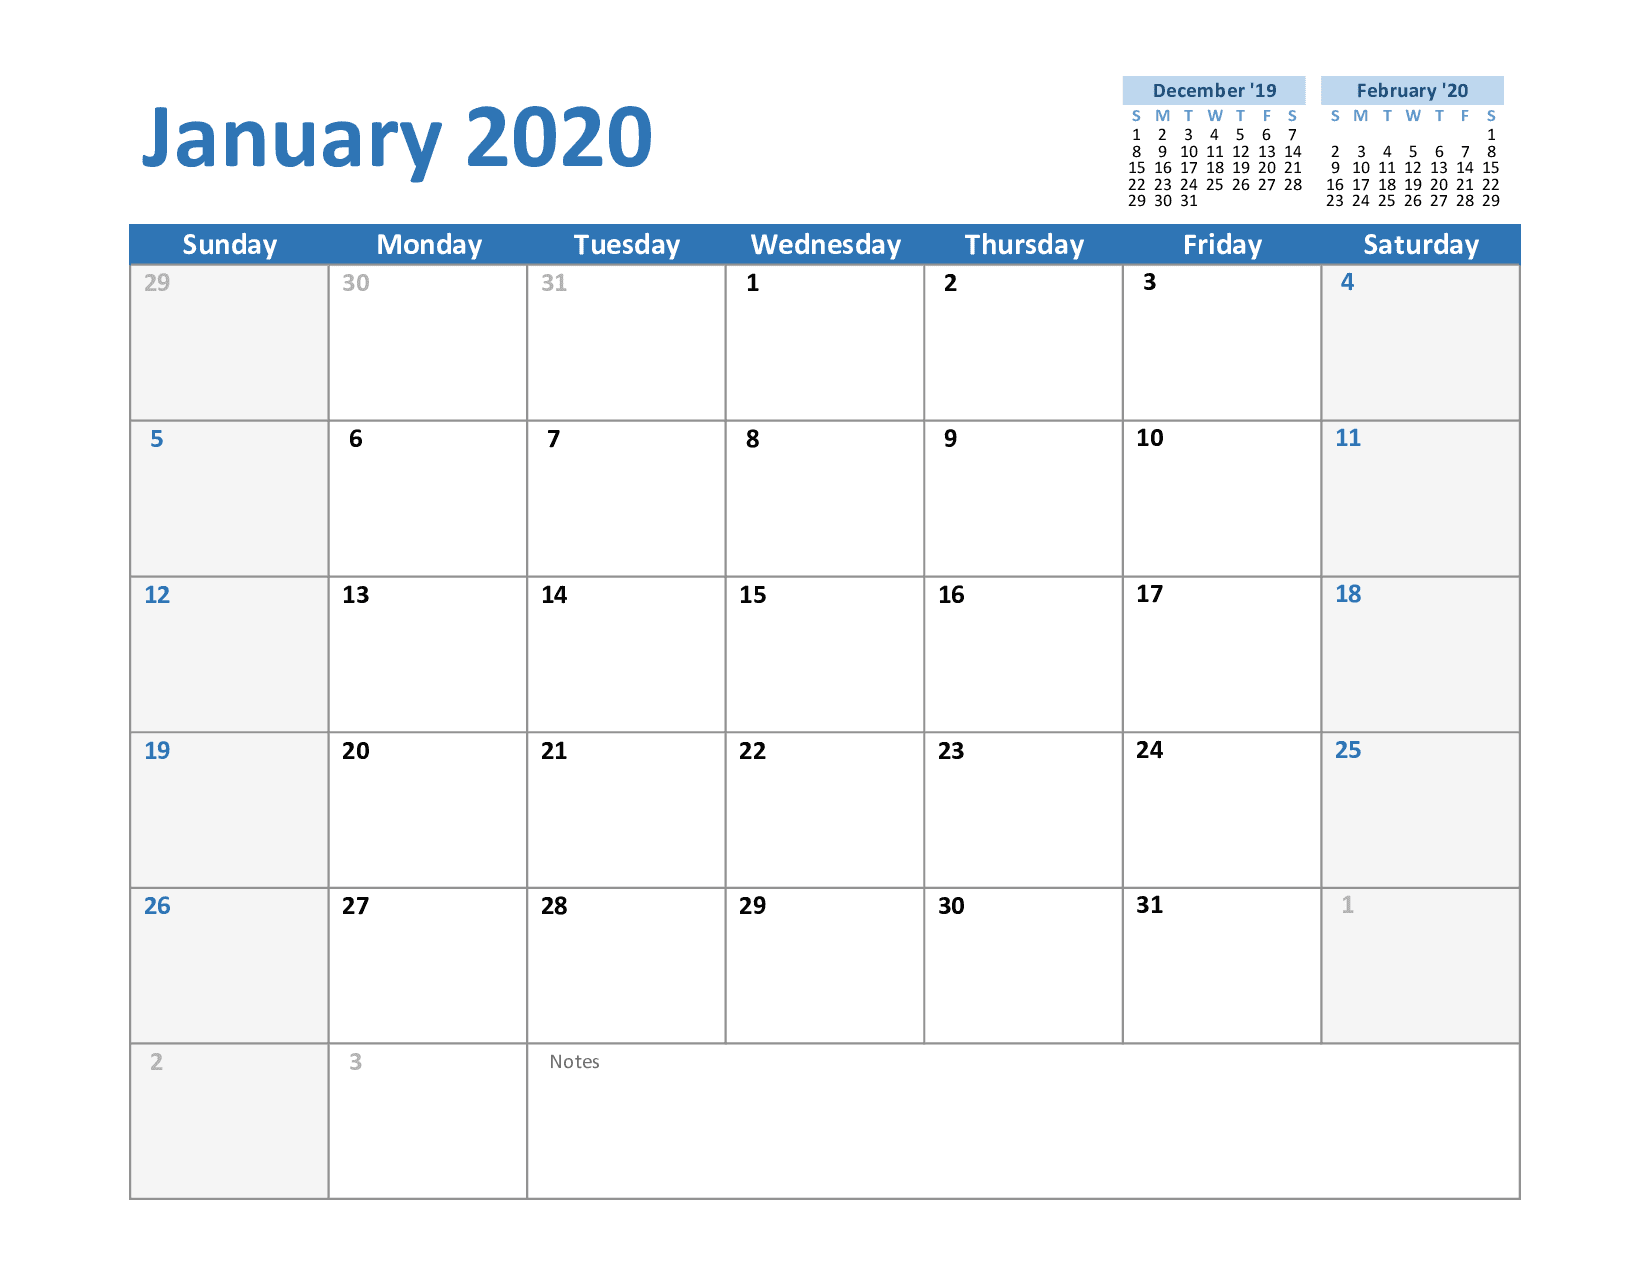 Calendar 2020 Template Word Free January Calendar 2020 Printable Template Blank In PDF Word Excel